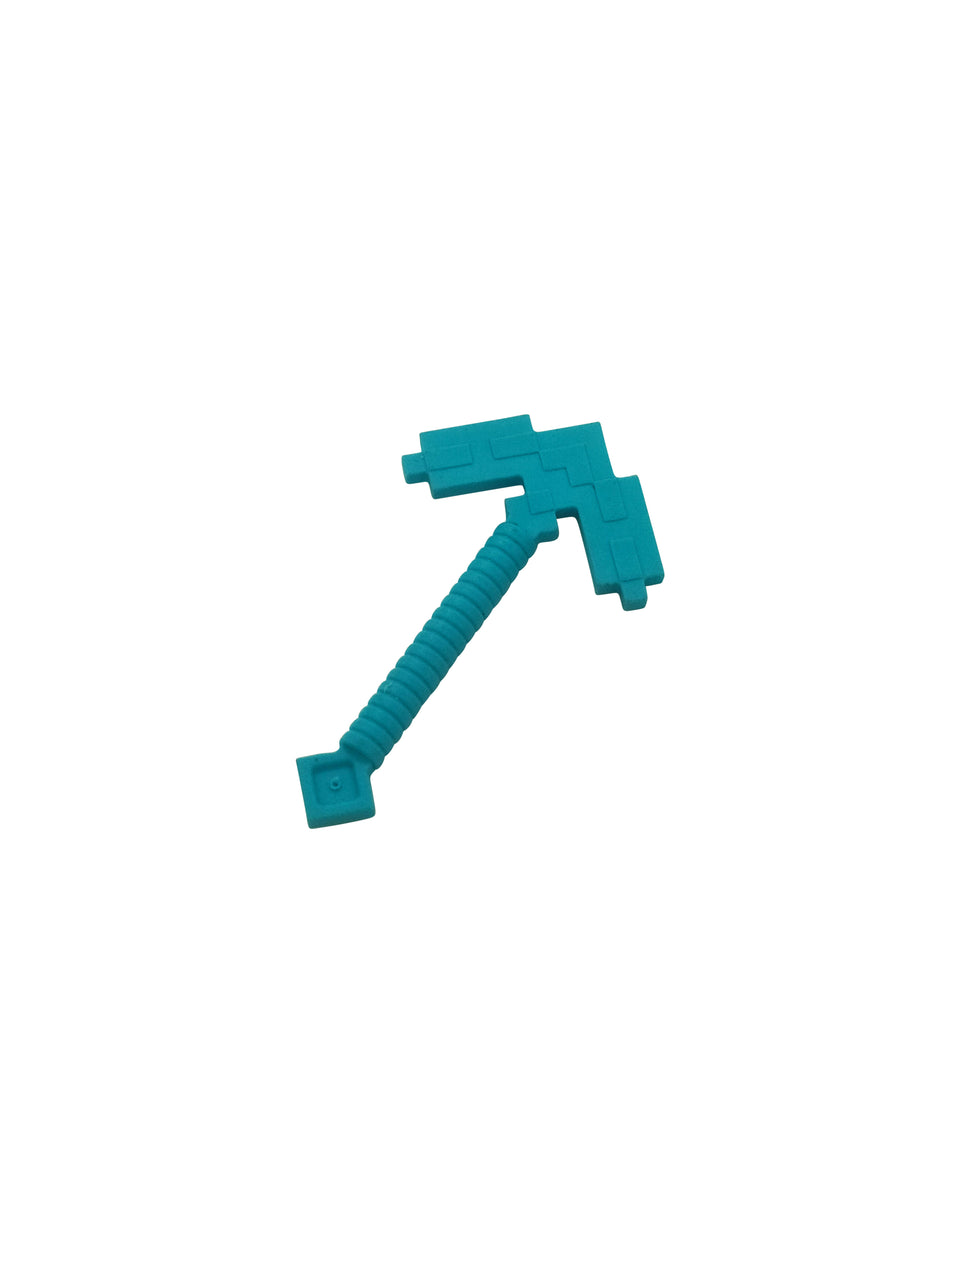 Light blue minecraft Ax - Lego